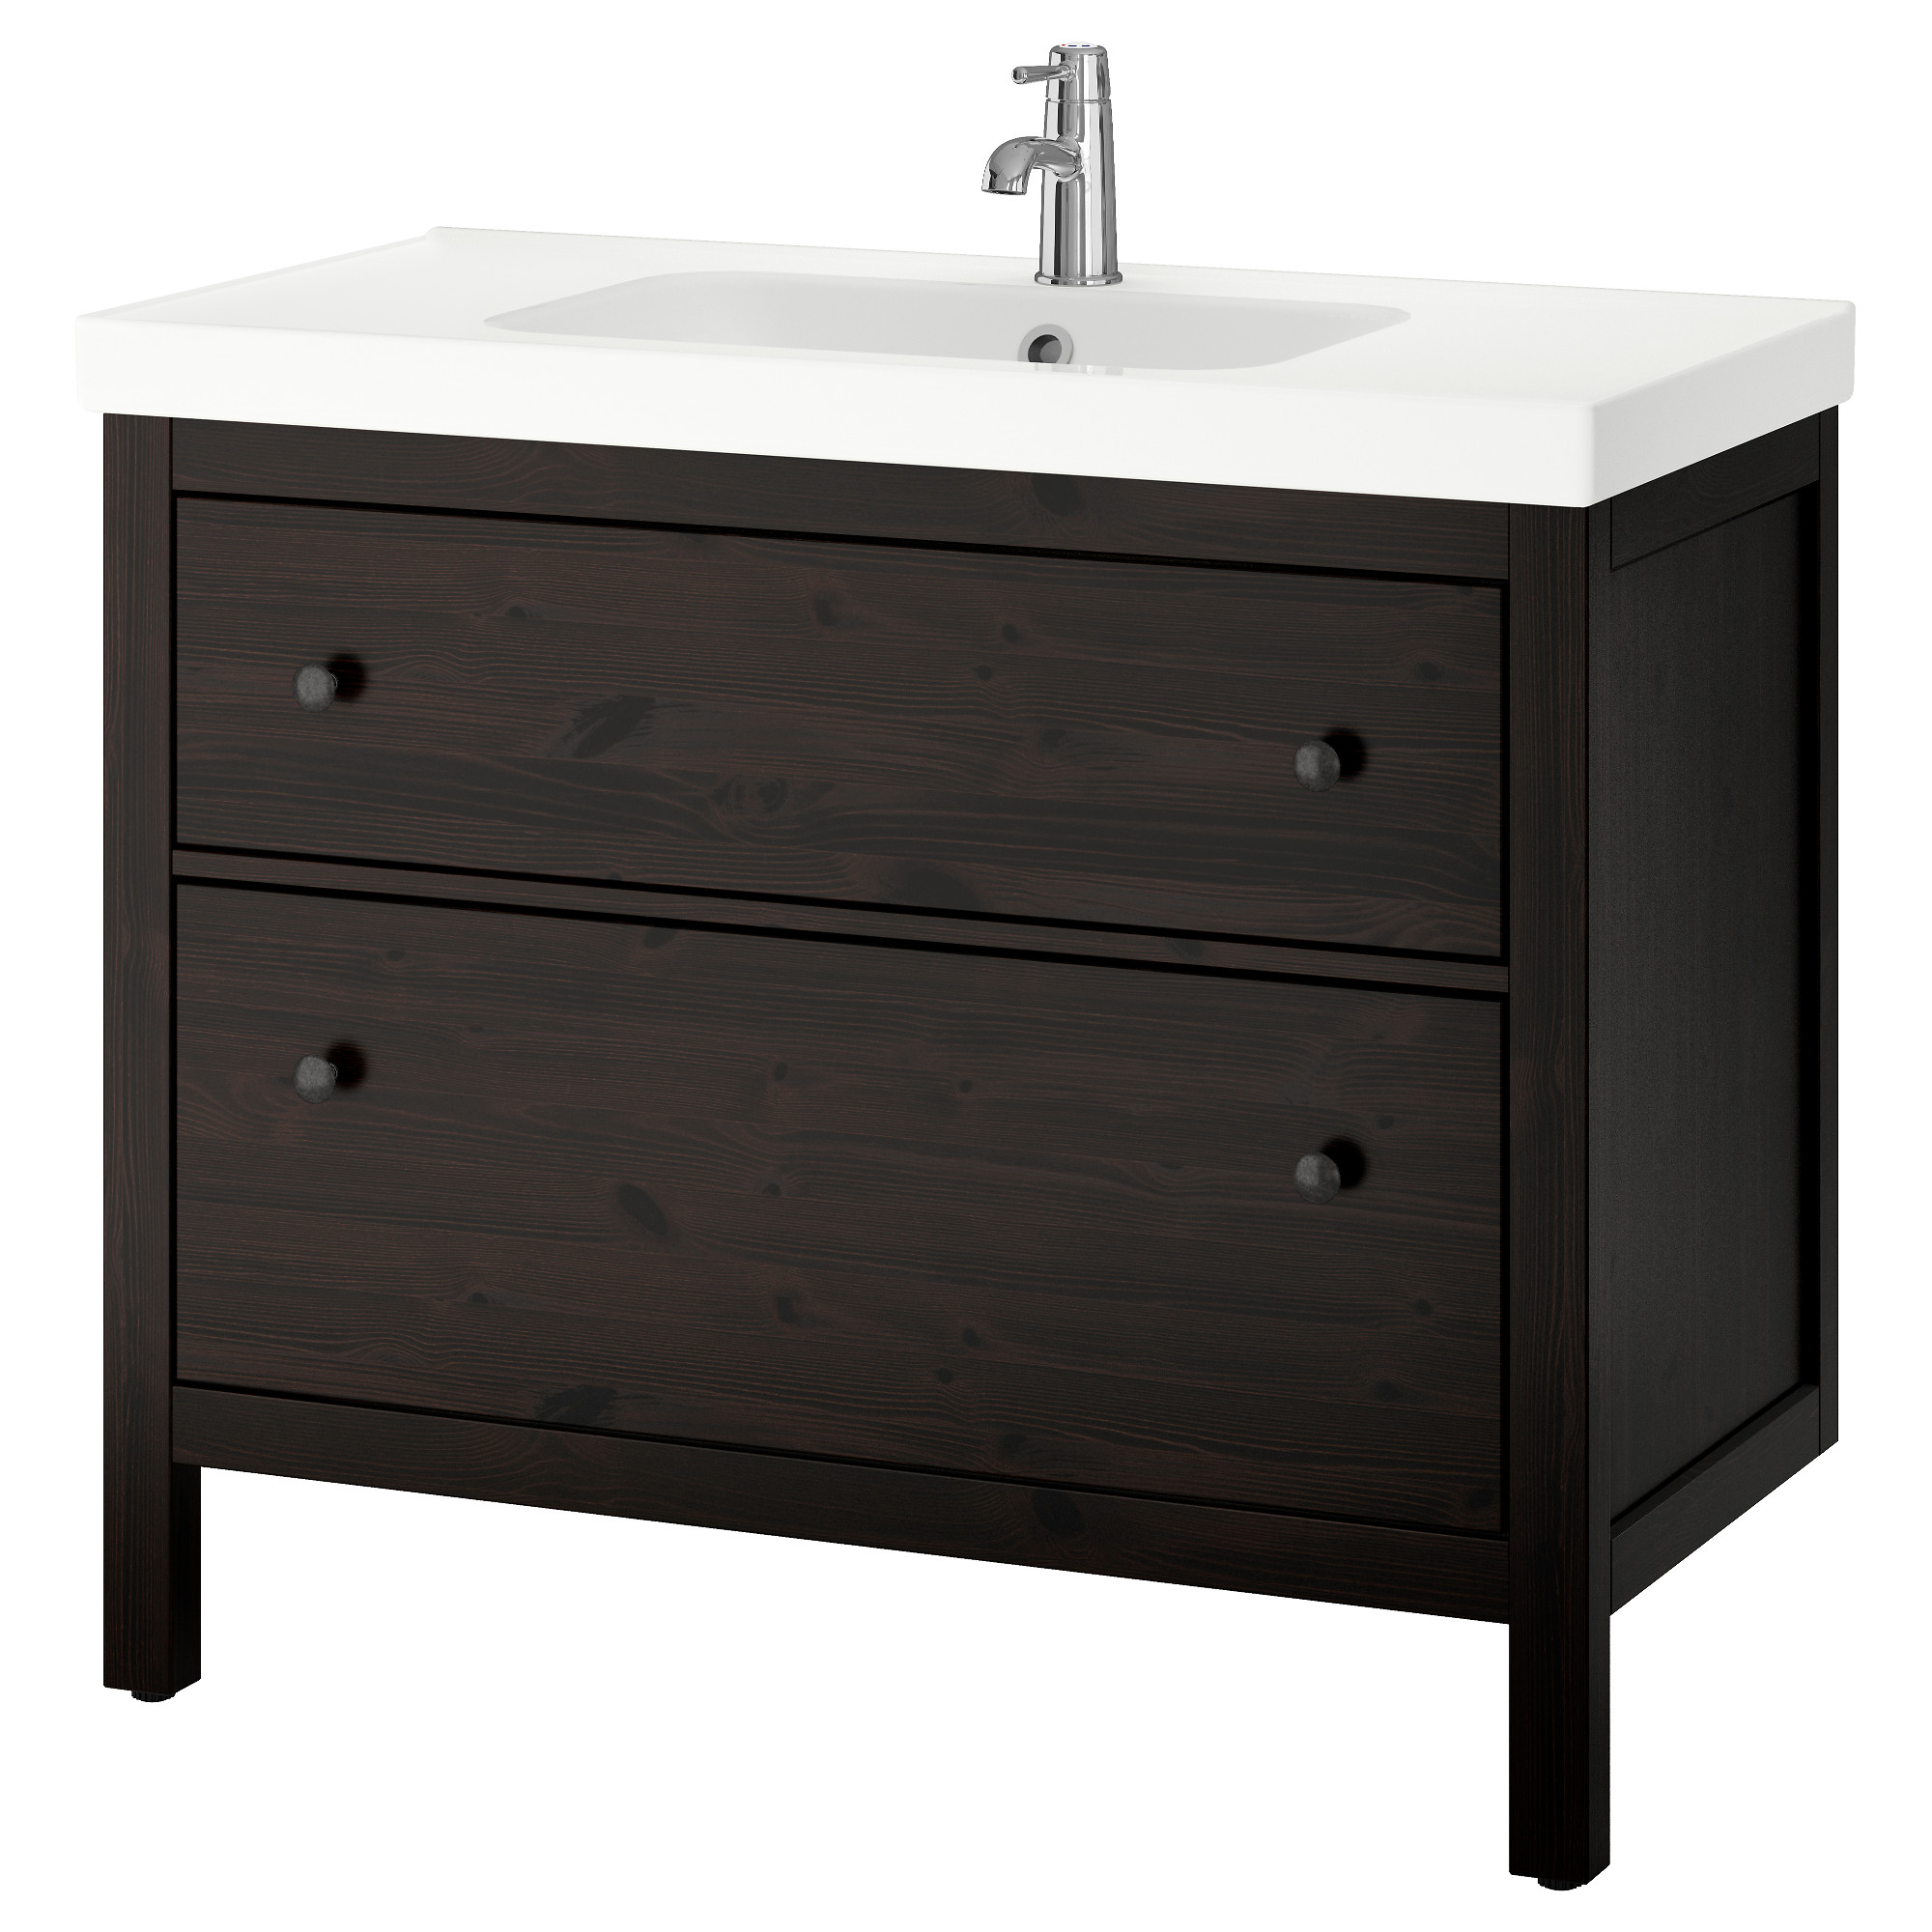 Bathroom Vanity And Sink bathroom vanities & countertops - ikea